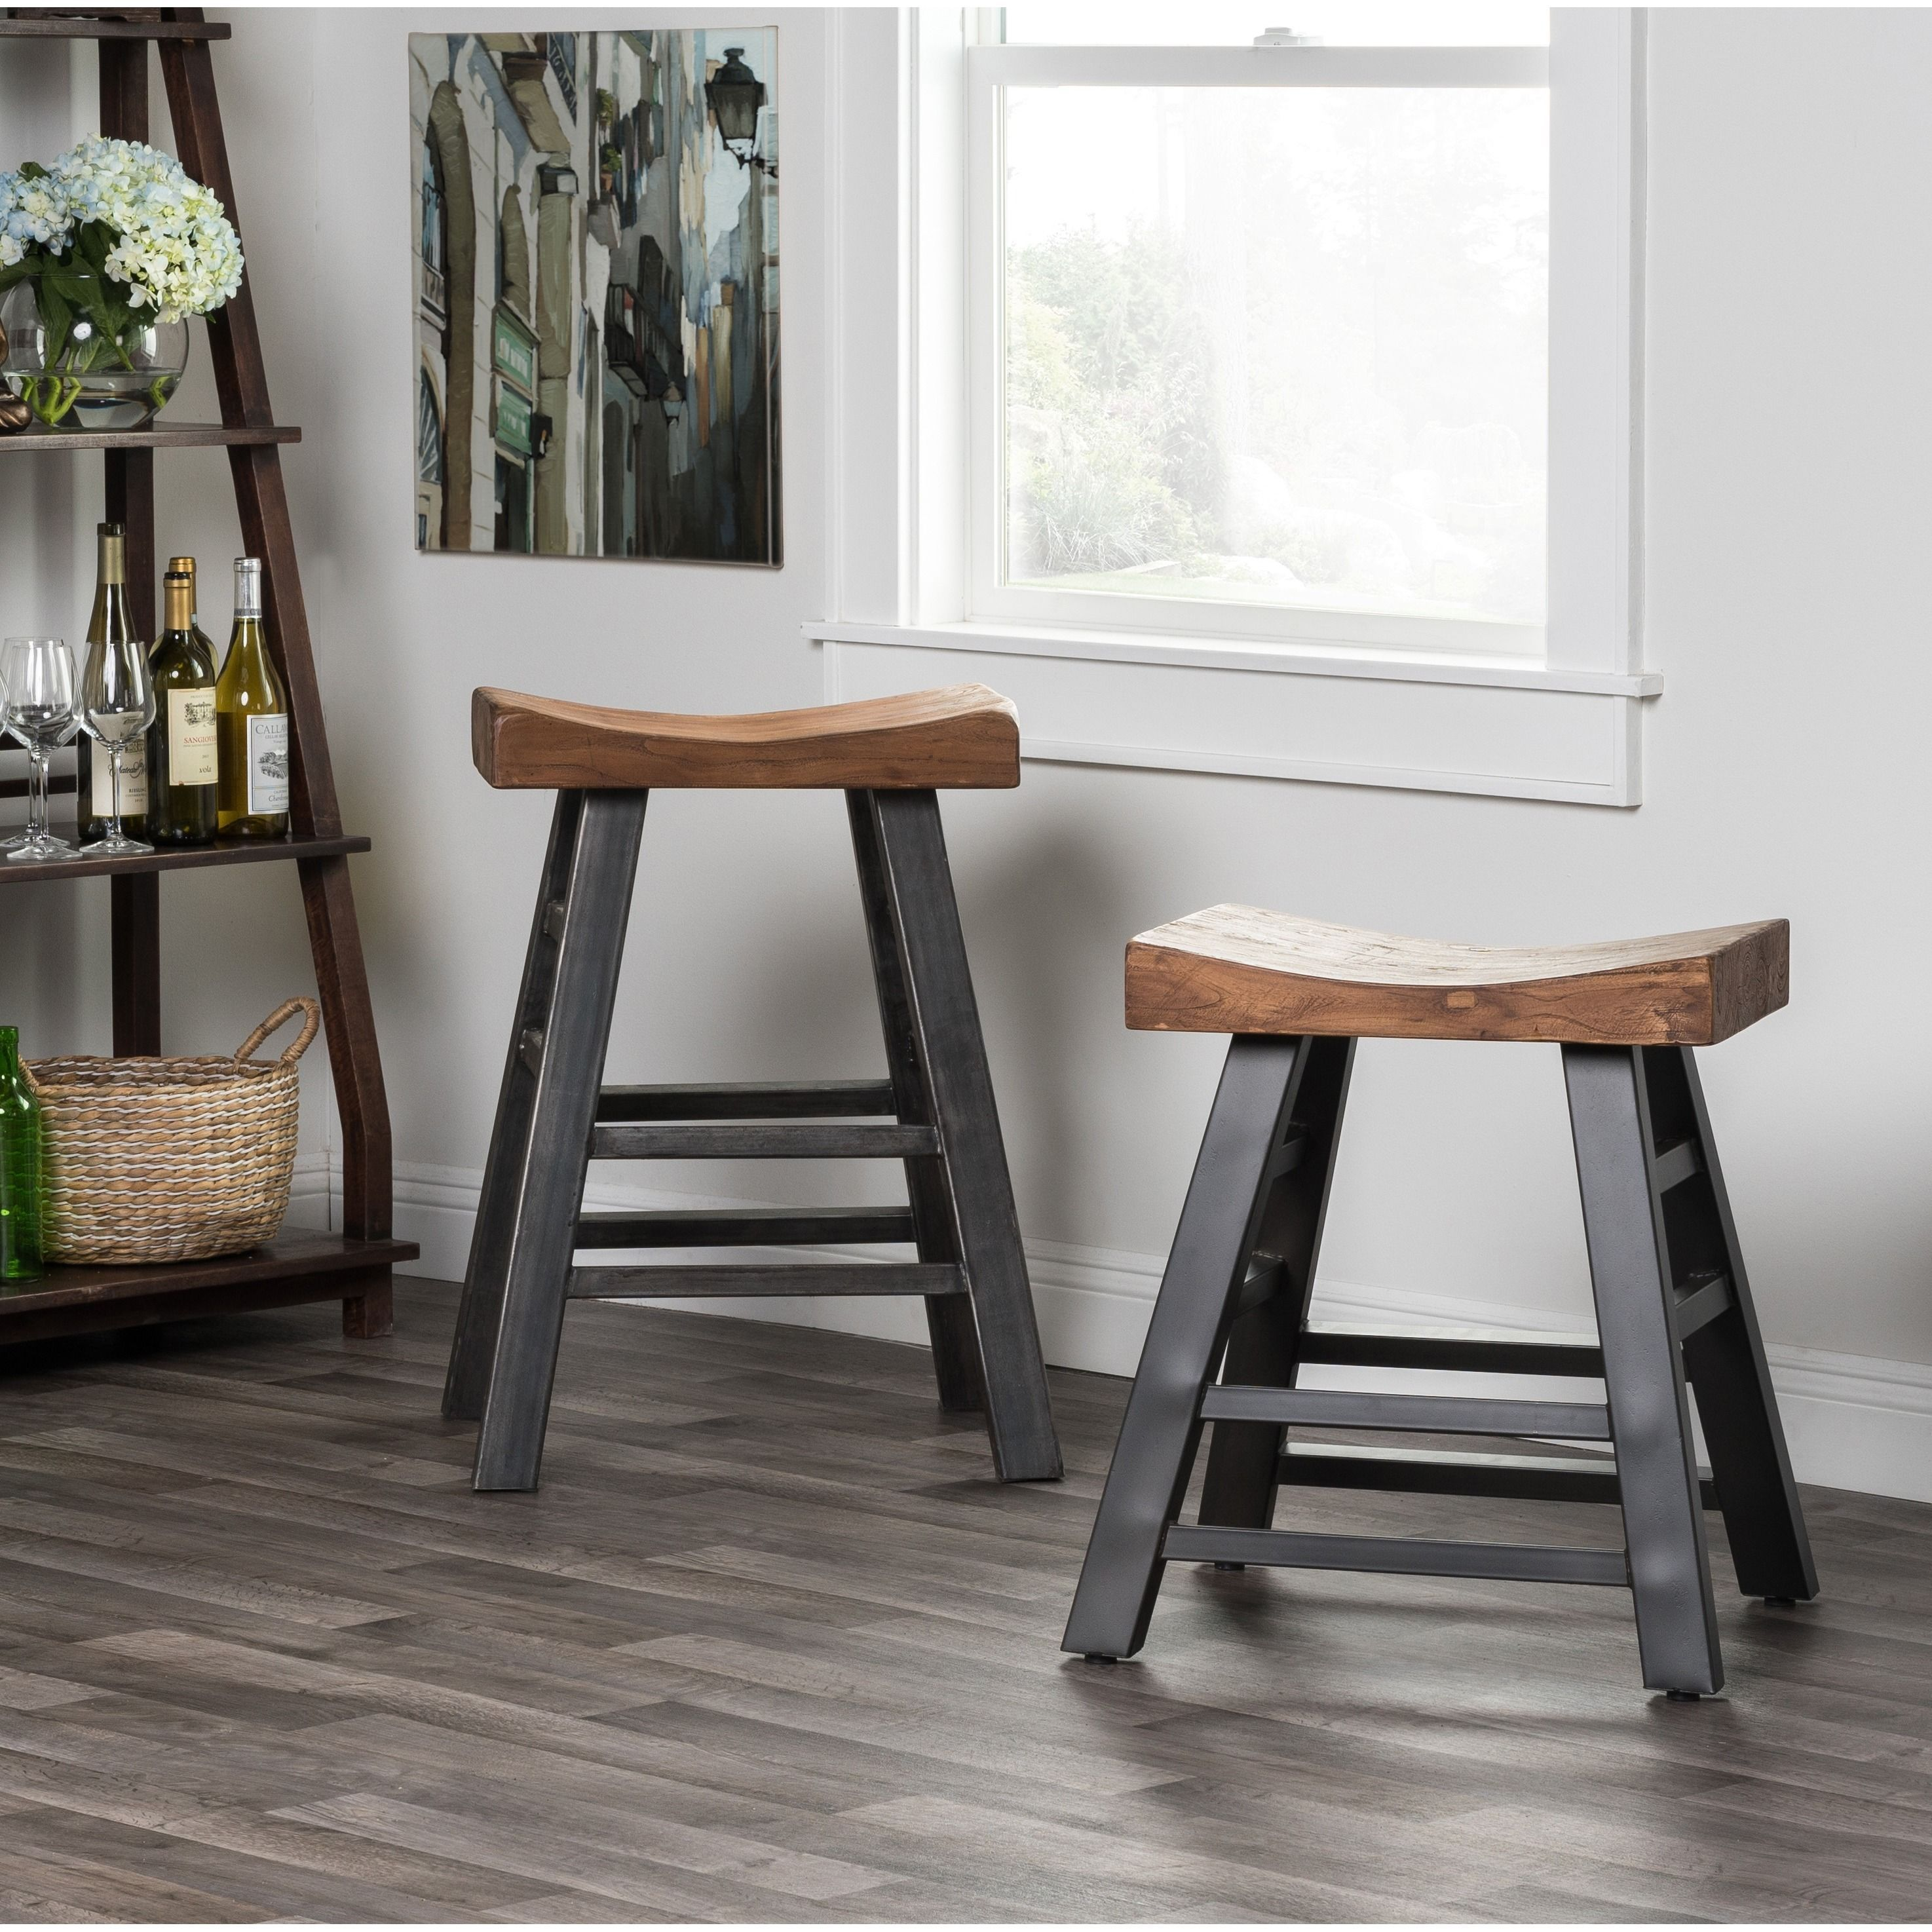 Beautiful 33 Inch High Bar Stools